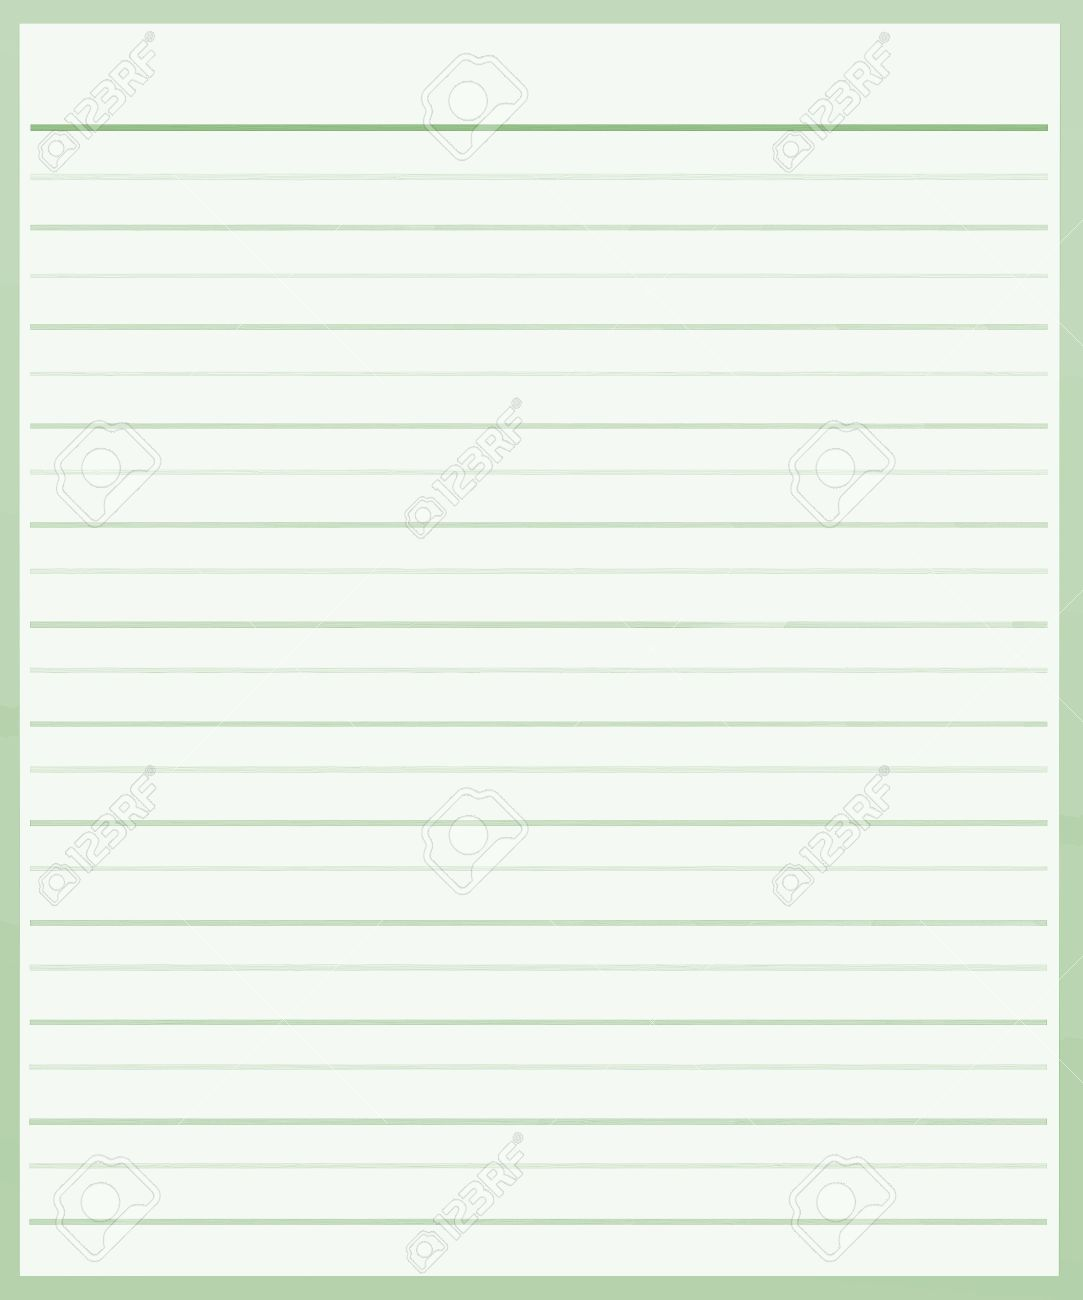 Doc400518 Lined Blank Paper Lined paper template Paperkit – Blank Line Paper